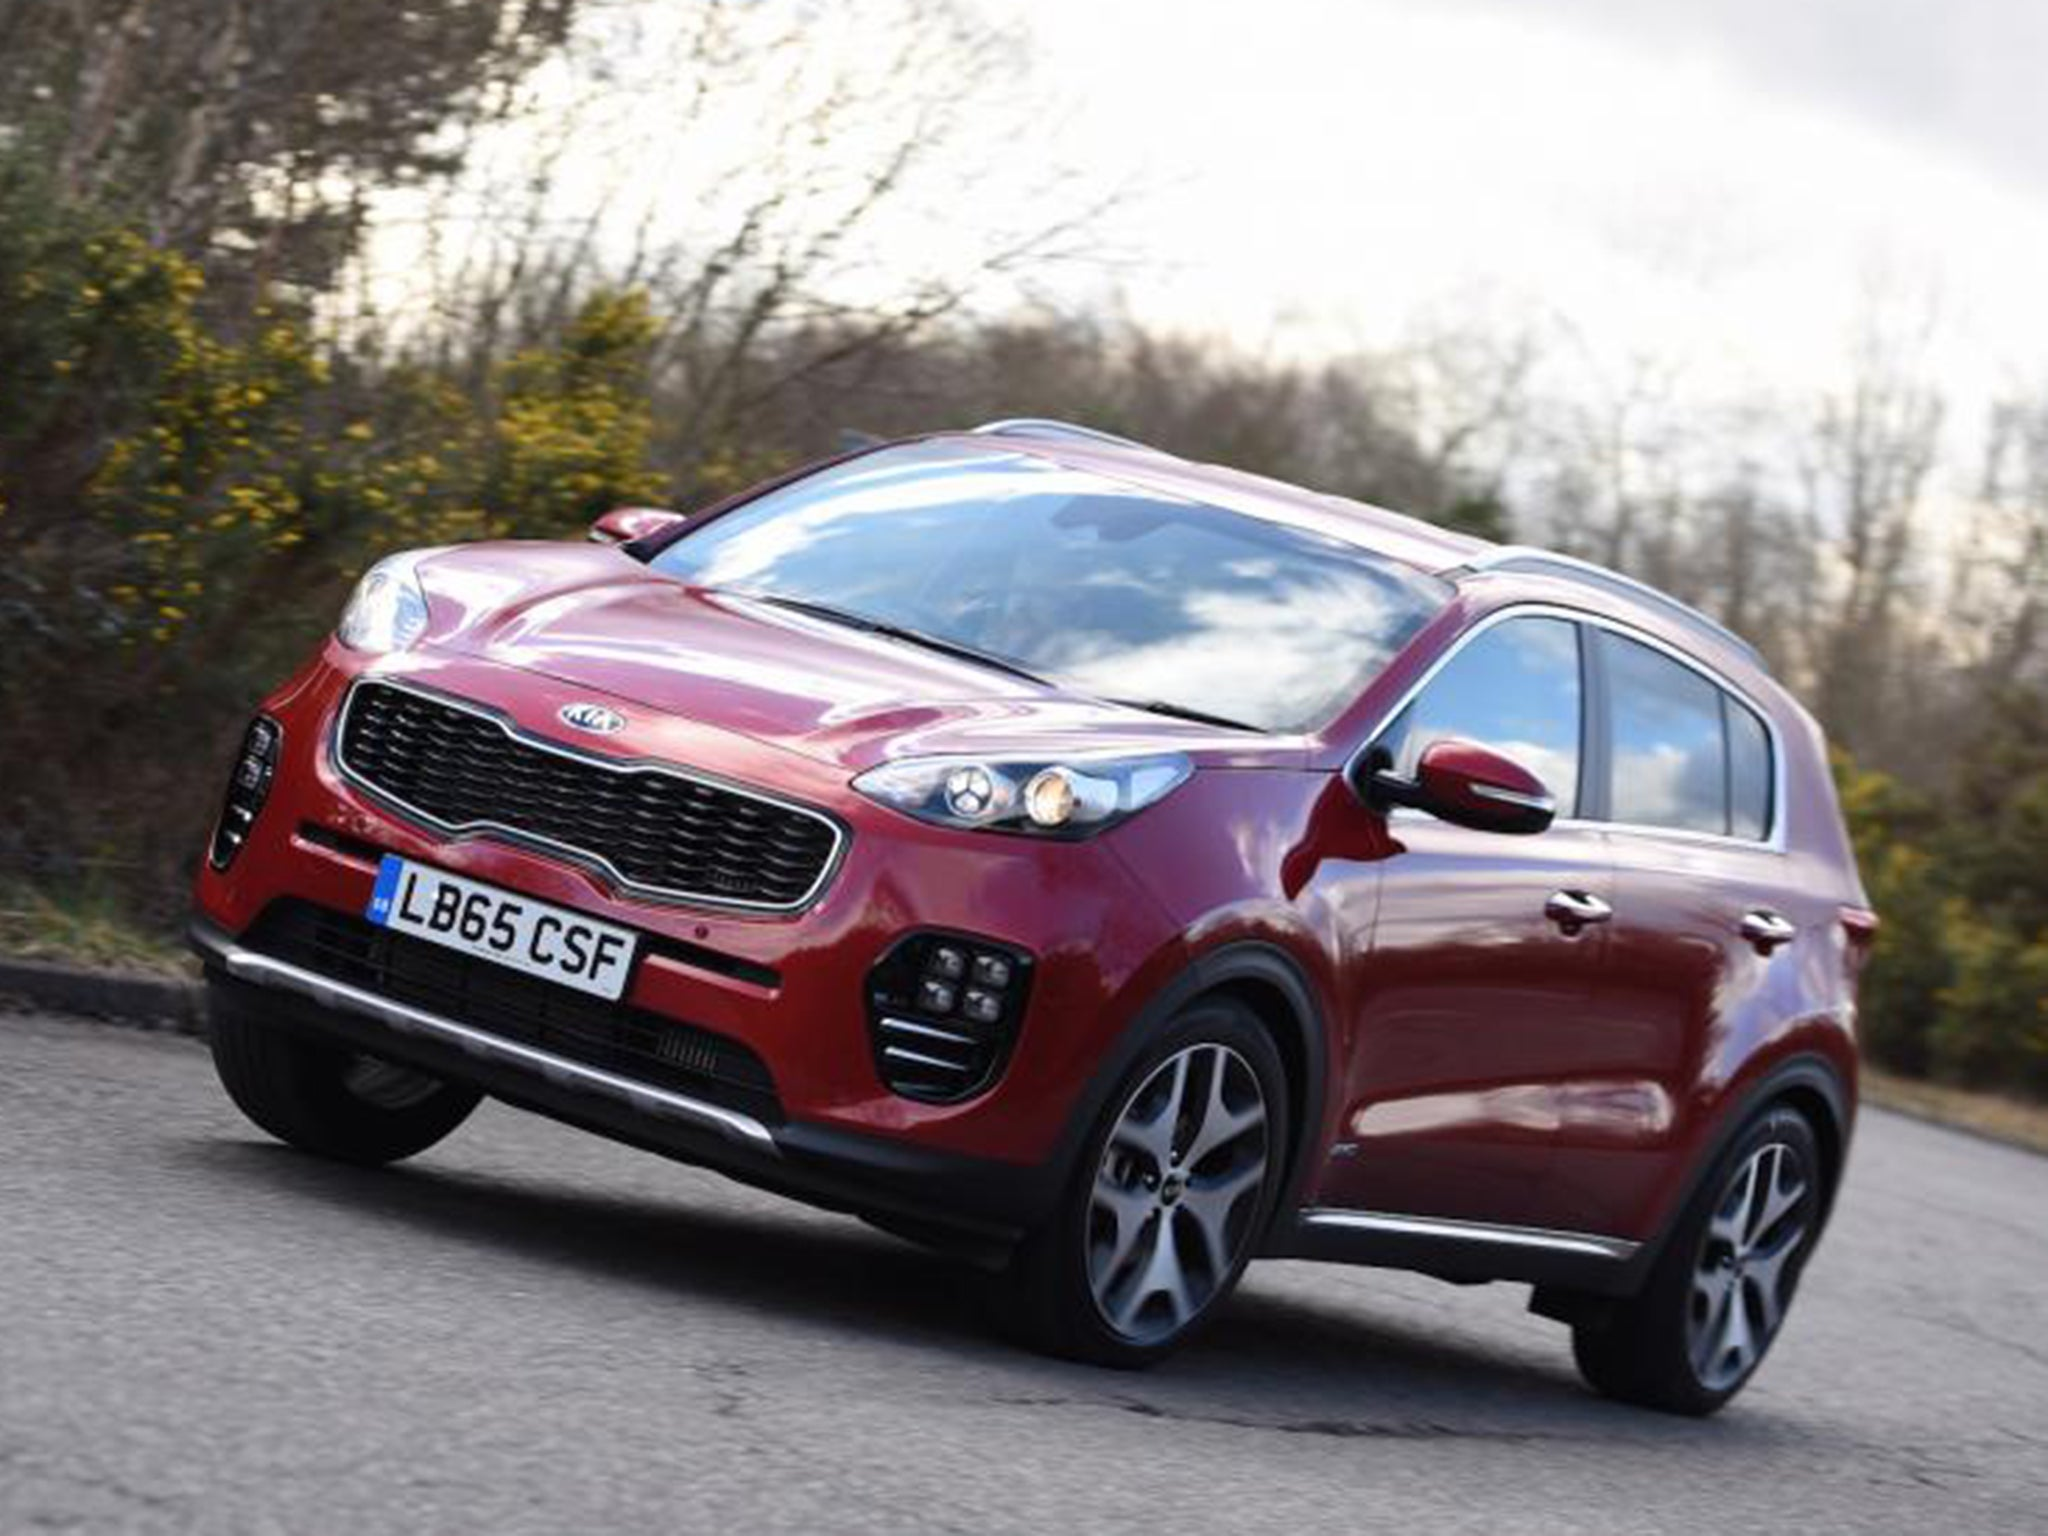 Kia sportage 1 6 t gdi gt line car review suv looks more fun than it is the independent